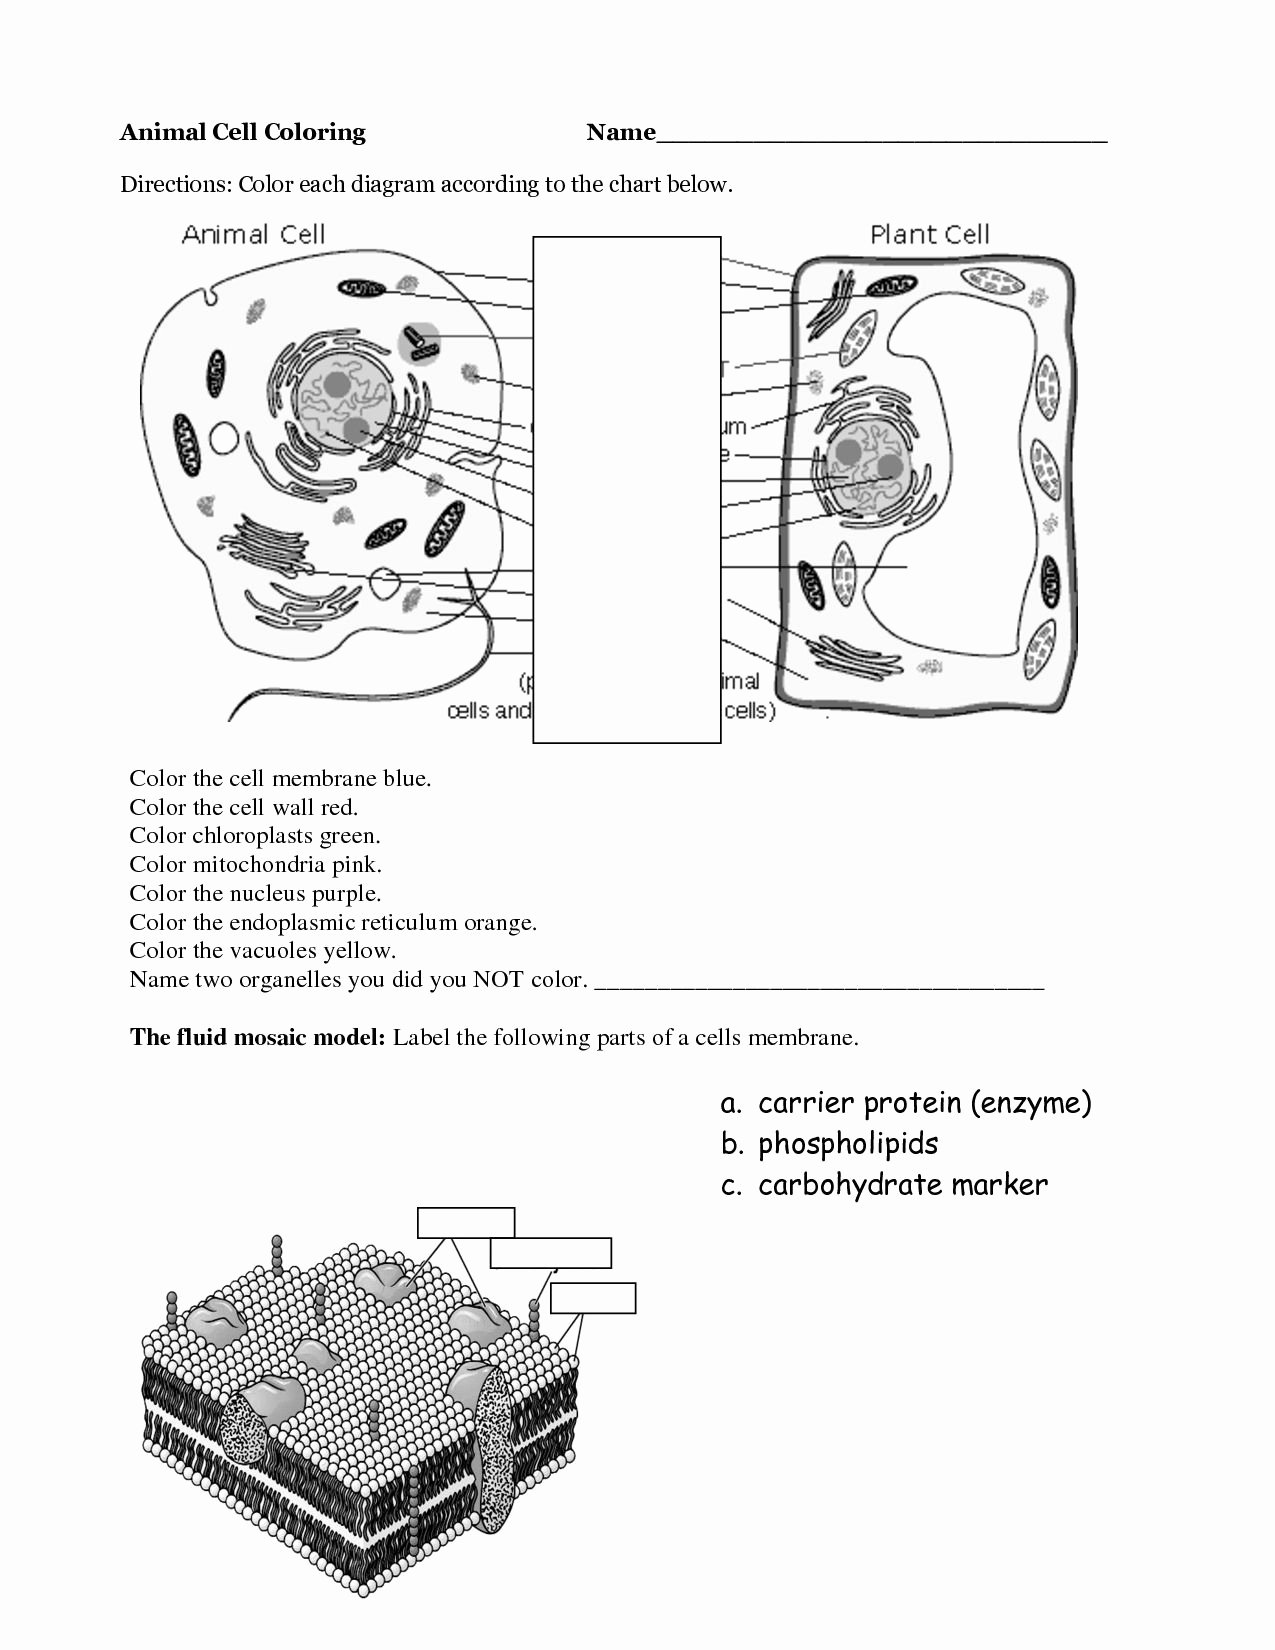 Plant Cell Coloring Worksheet Inspirational Animal Cell Coloring Page Coloring Home